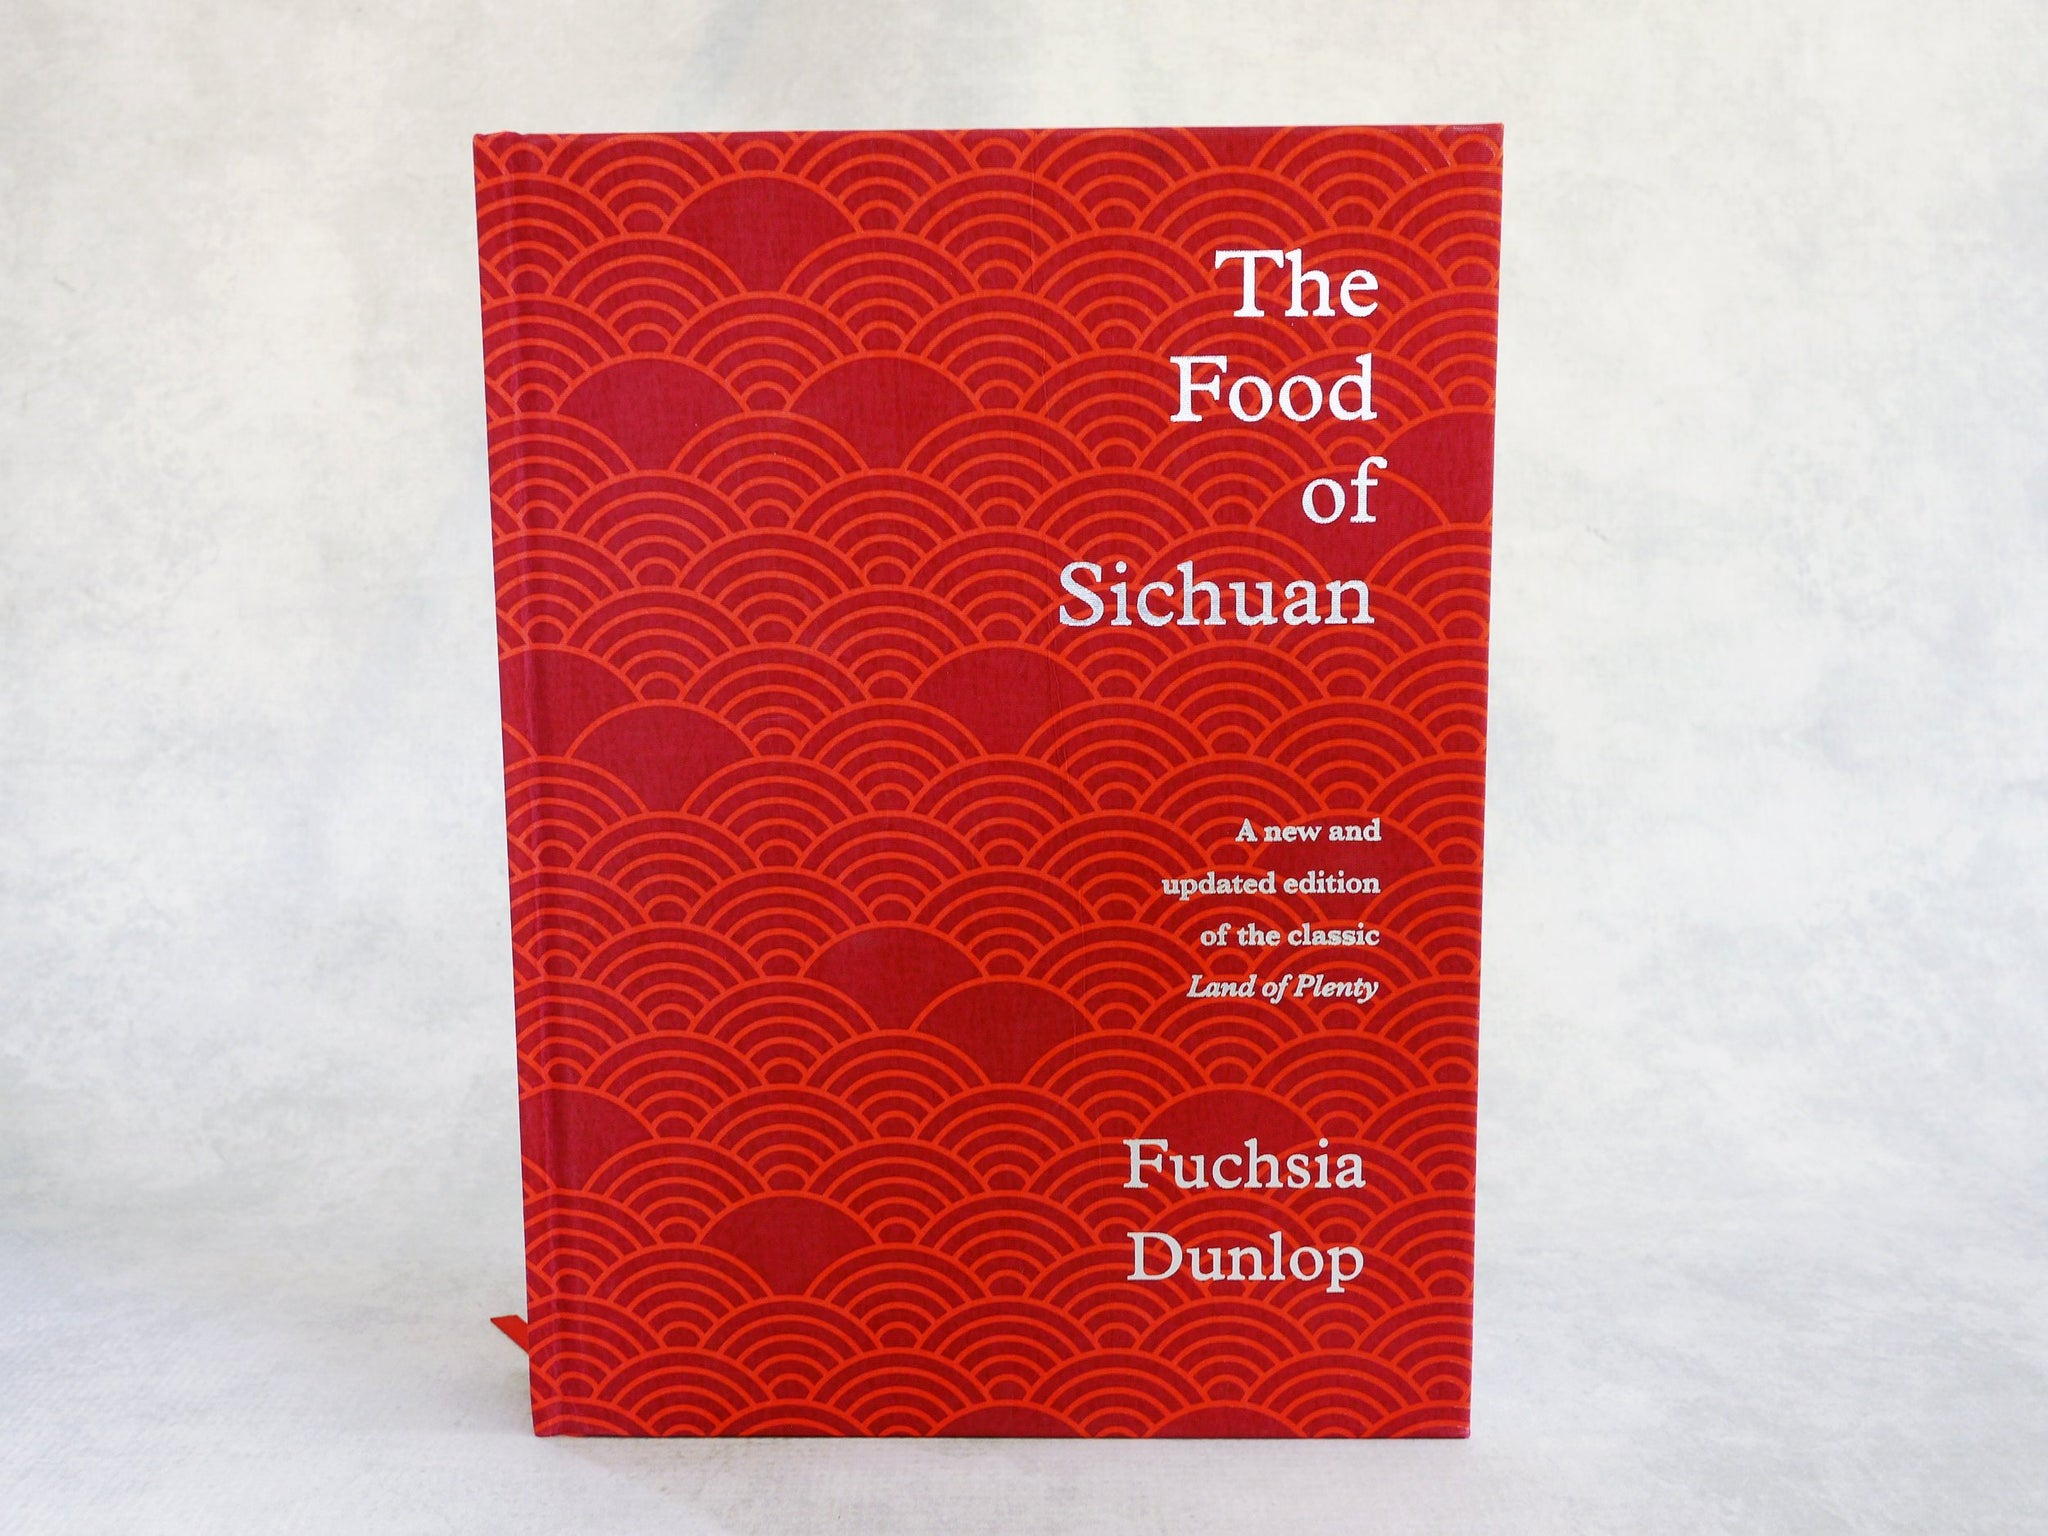 The Food of Sichuan (Cookbook by Fuchsia Dunlop)